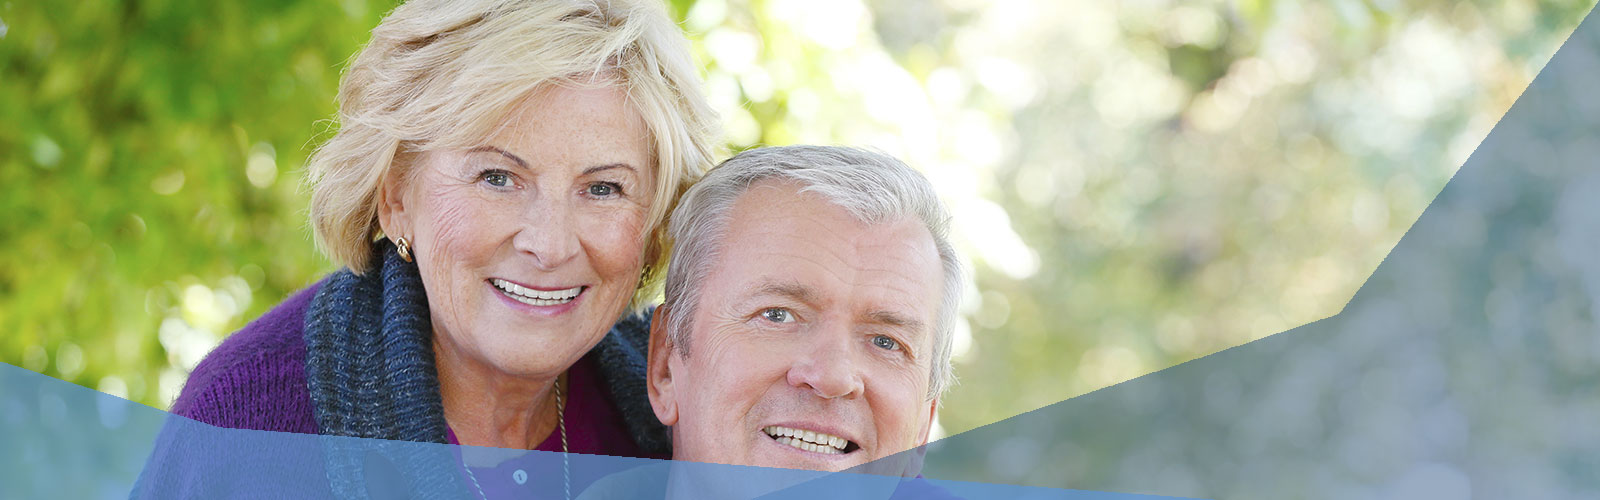 dental implants - Midlothian, VA